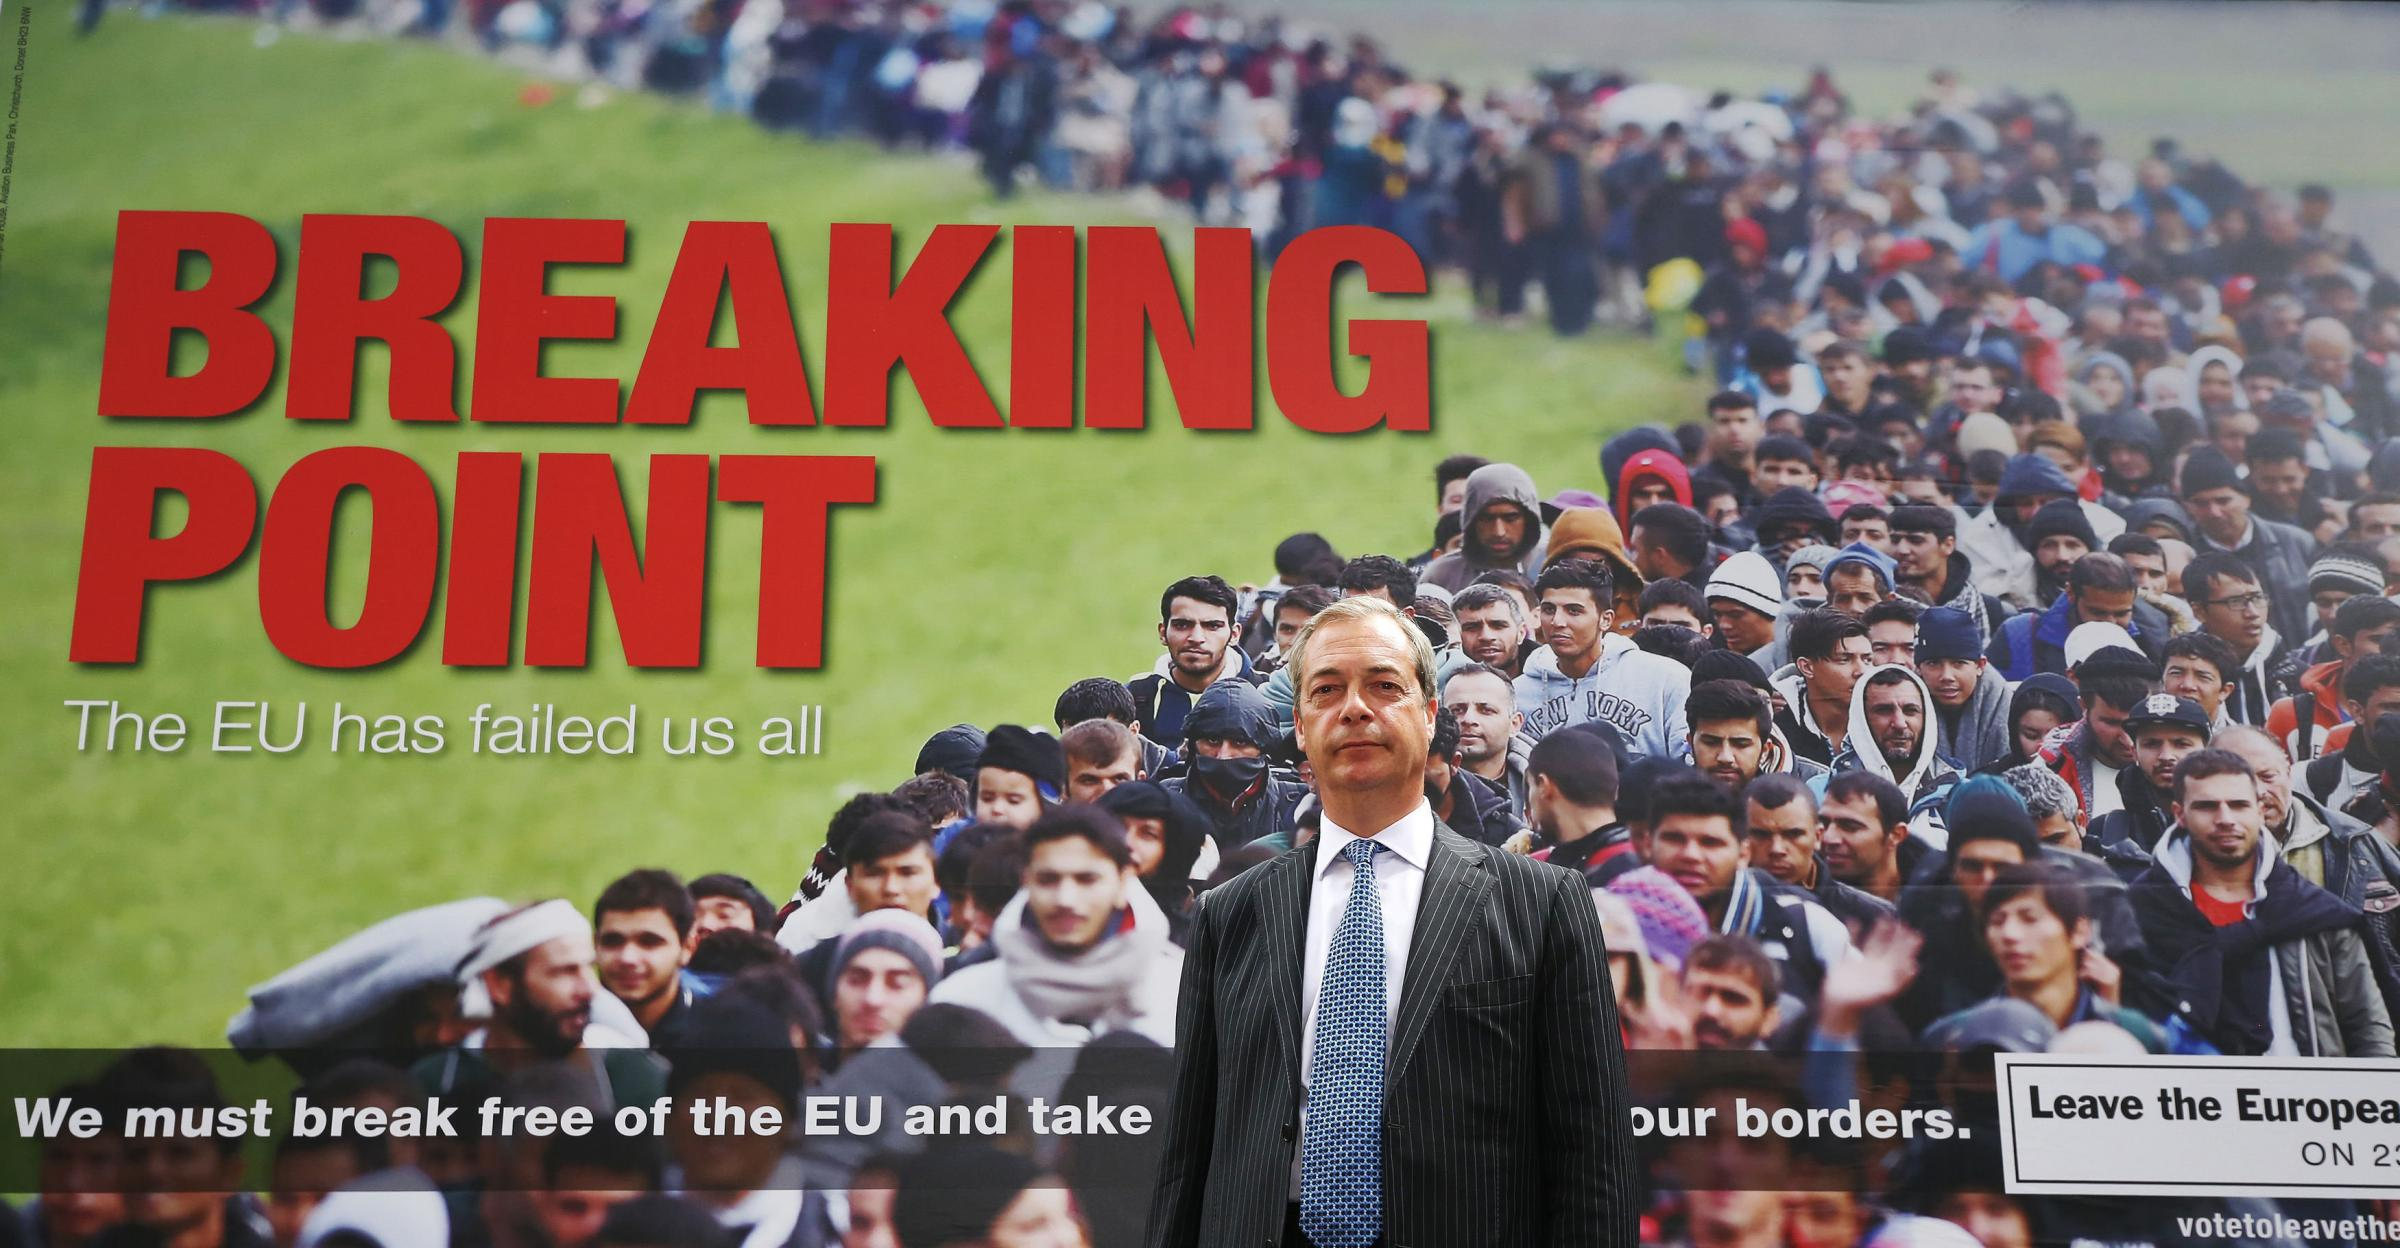 Nigel Farage fronted Leave.EU during his time as the leader of Ukip